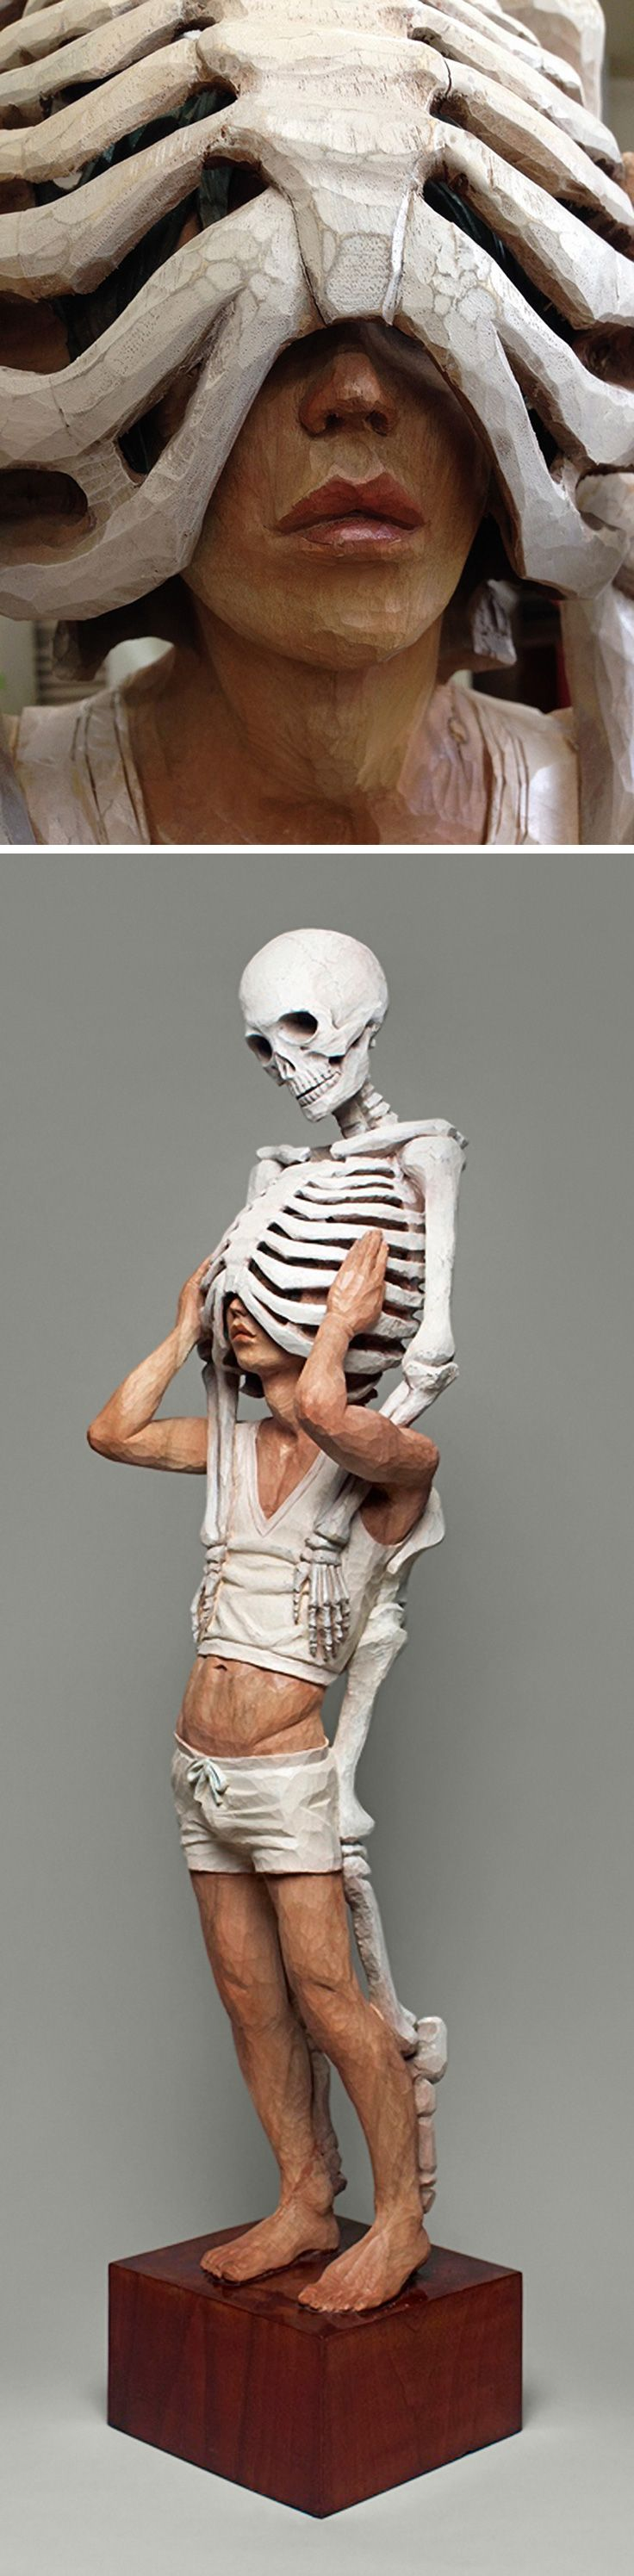 Yoshitoshi Kanemaki, human anatomy paint on Camphor wood sculpture. #skeleton